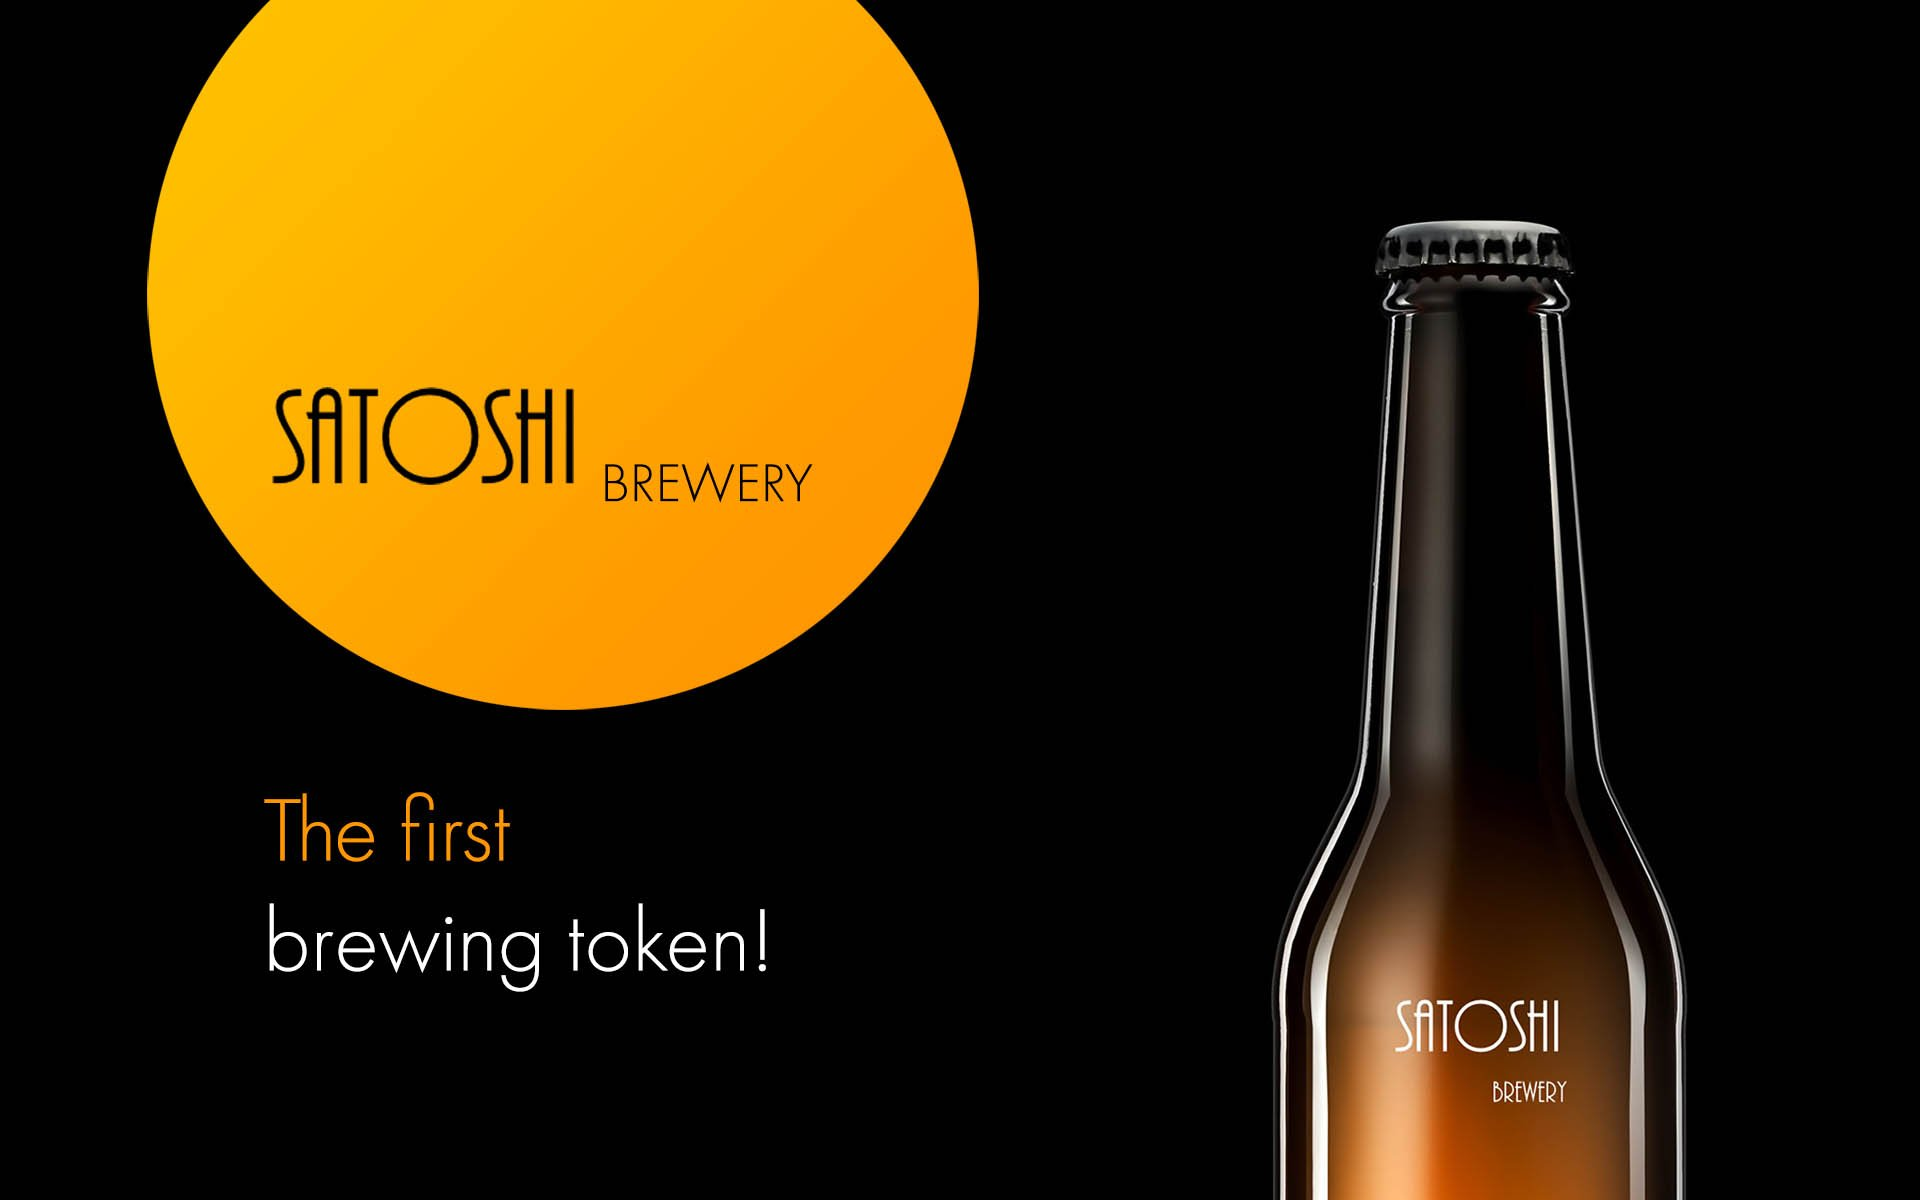 Only 5 Days Left to Buy Tokens of the Most Innovative Brewery in Russia with 44% Profit